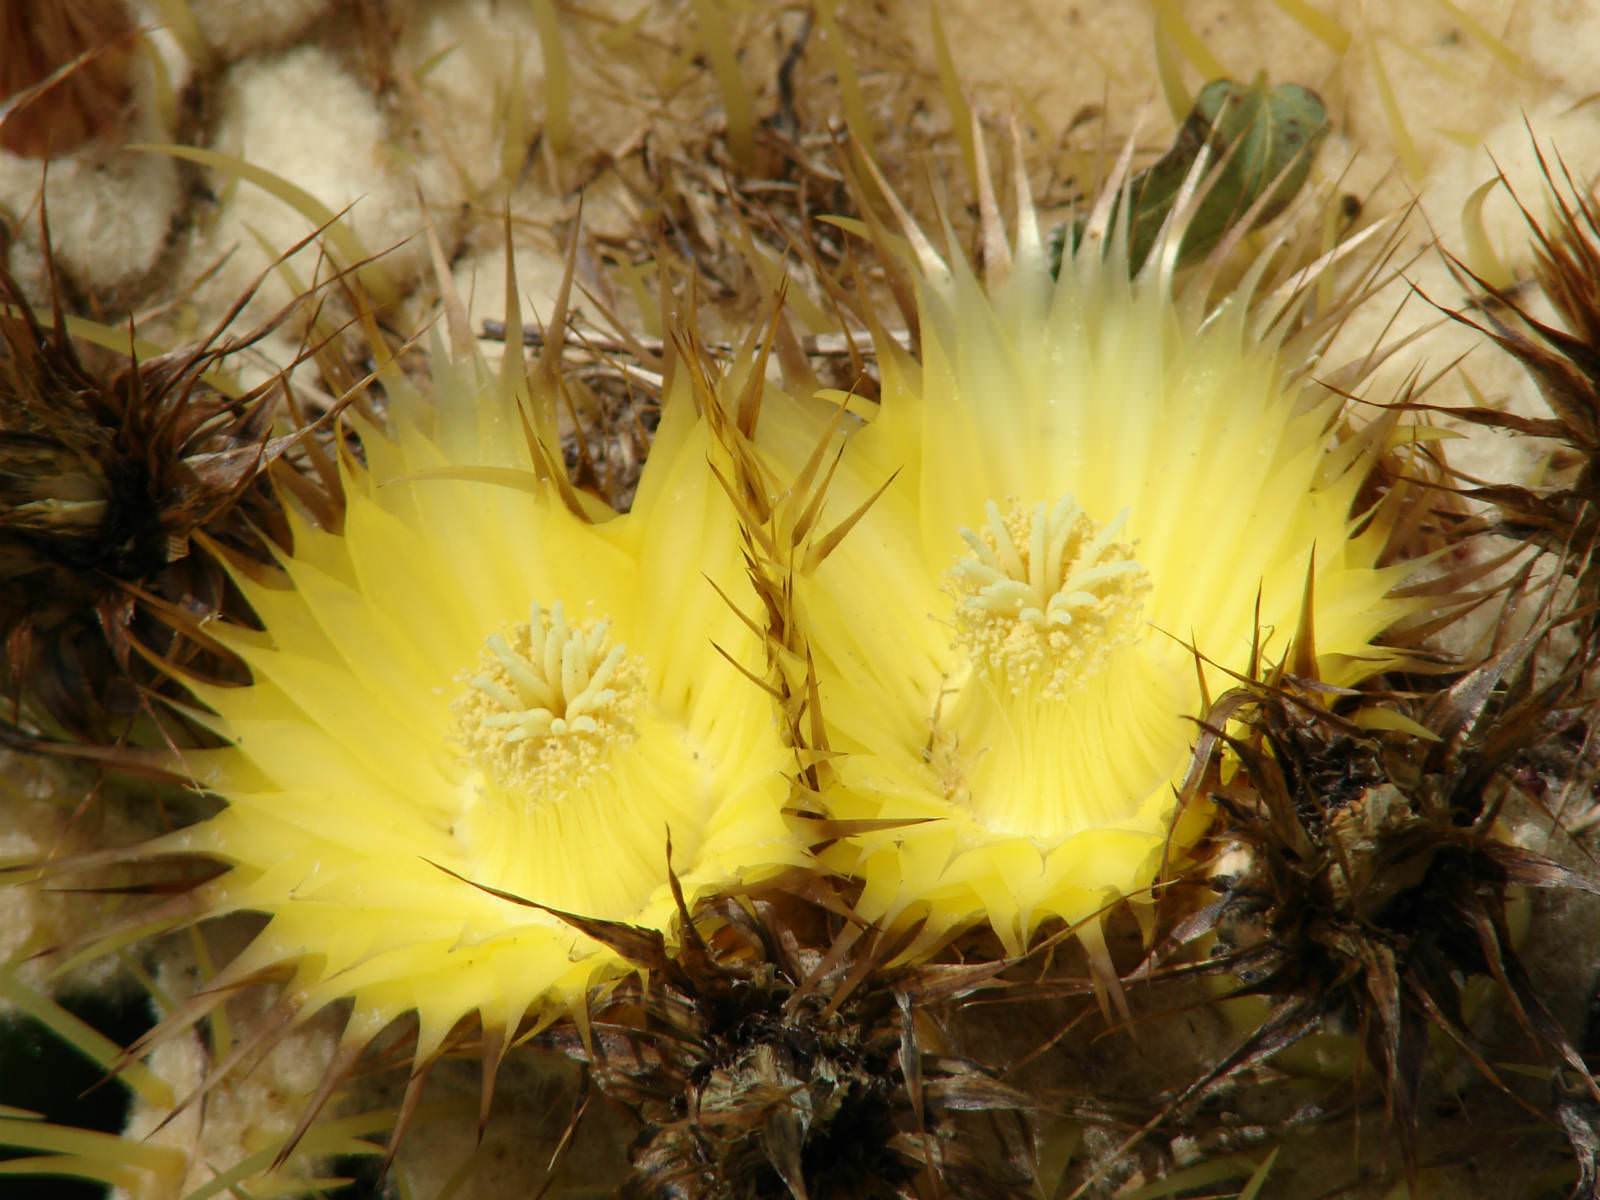 Echinocactus grusonii - Golden Barrel Cactus | World of Flowering Plants